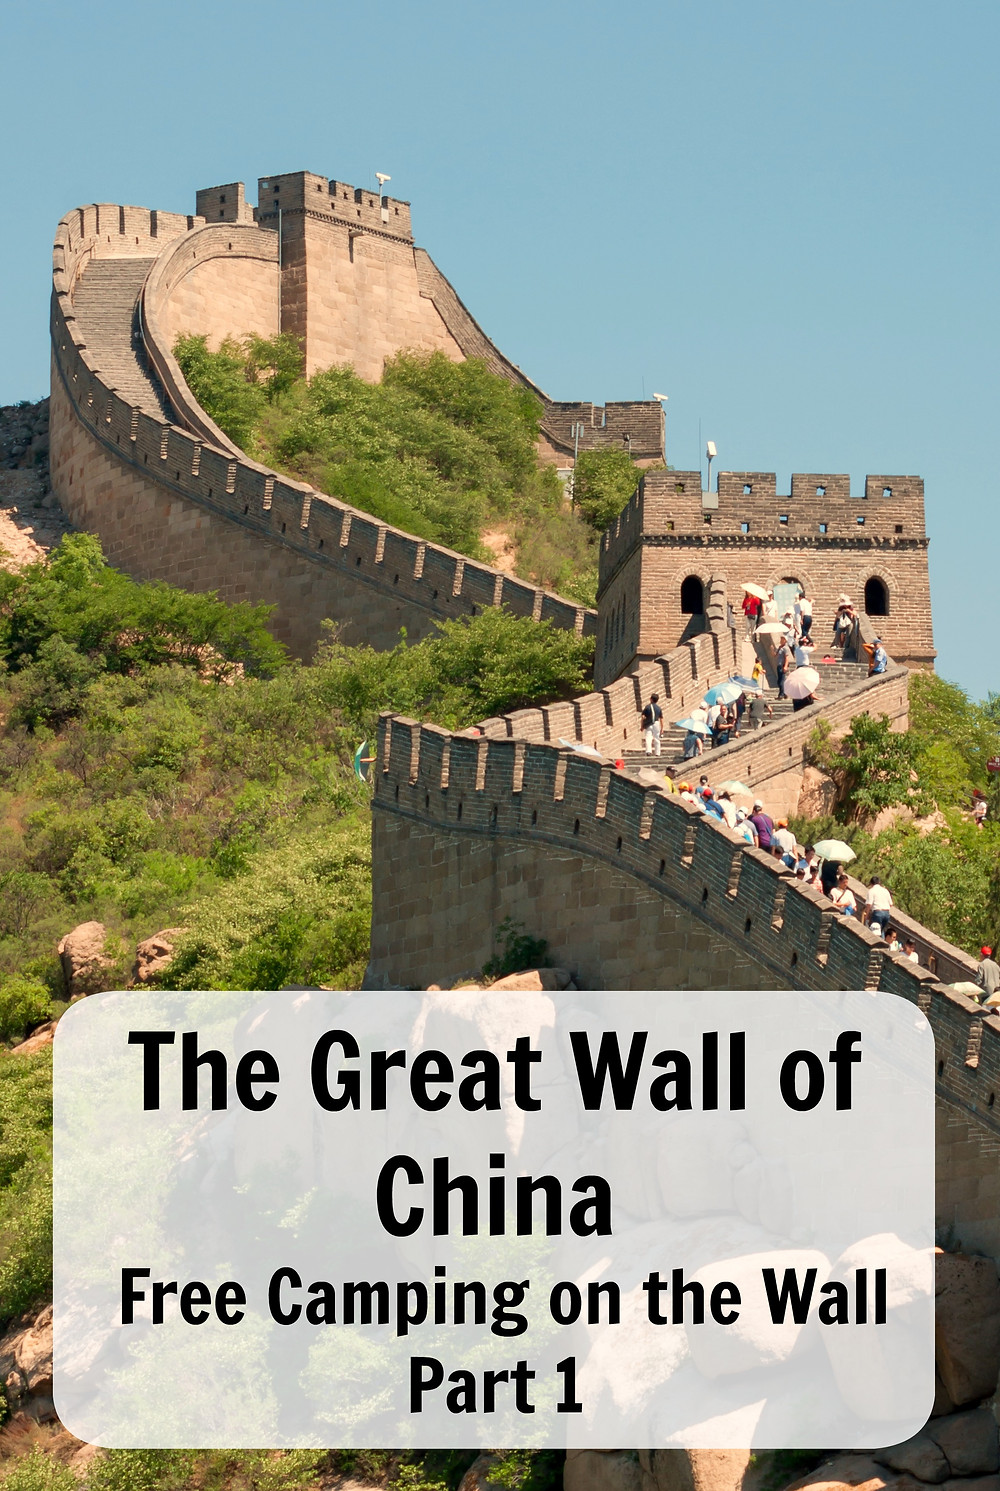 The great wall of china - camping on the wall